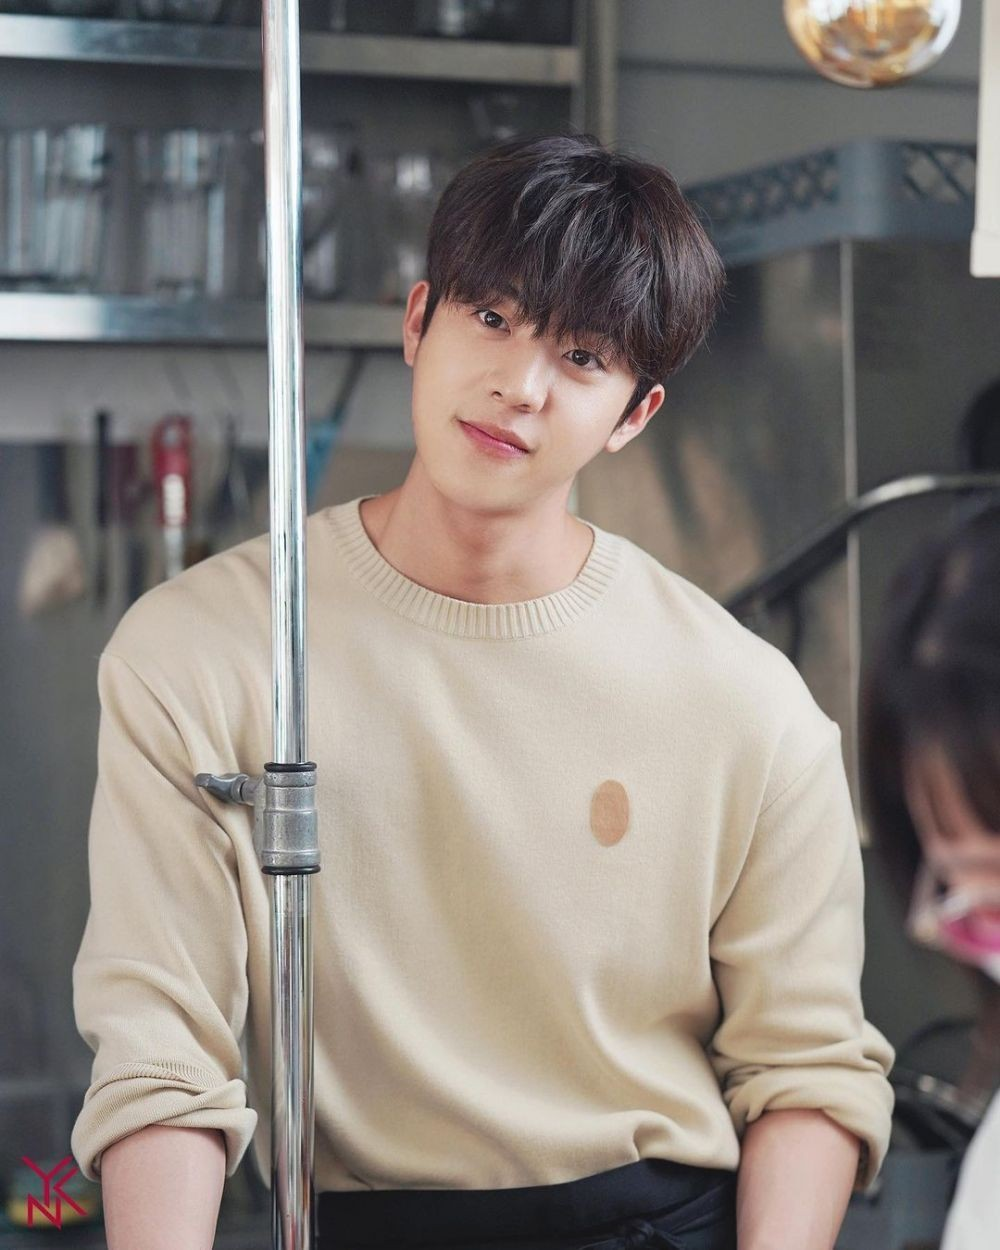 10 Adu Pesona Chae Jong Hyeop di Nevertheless Vs The Witch's Diner